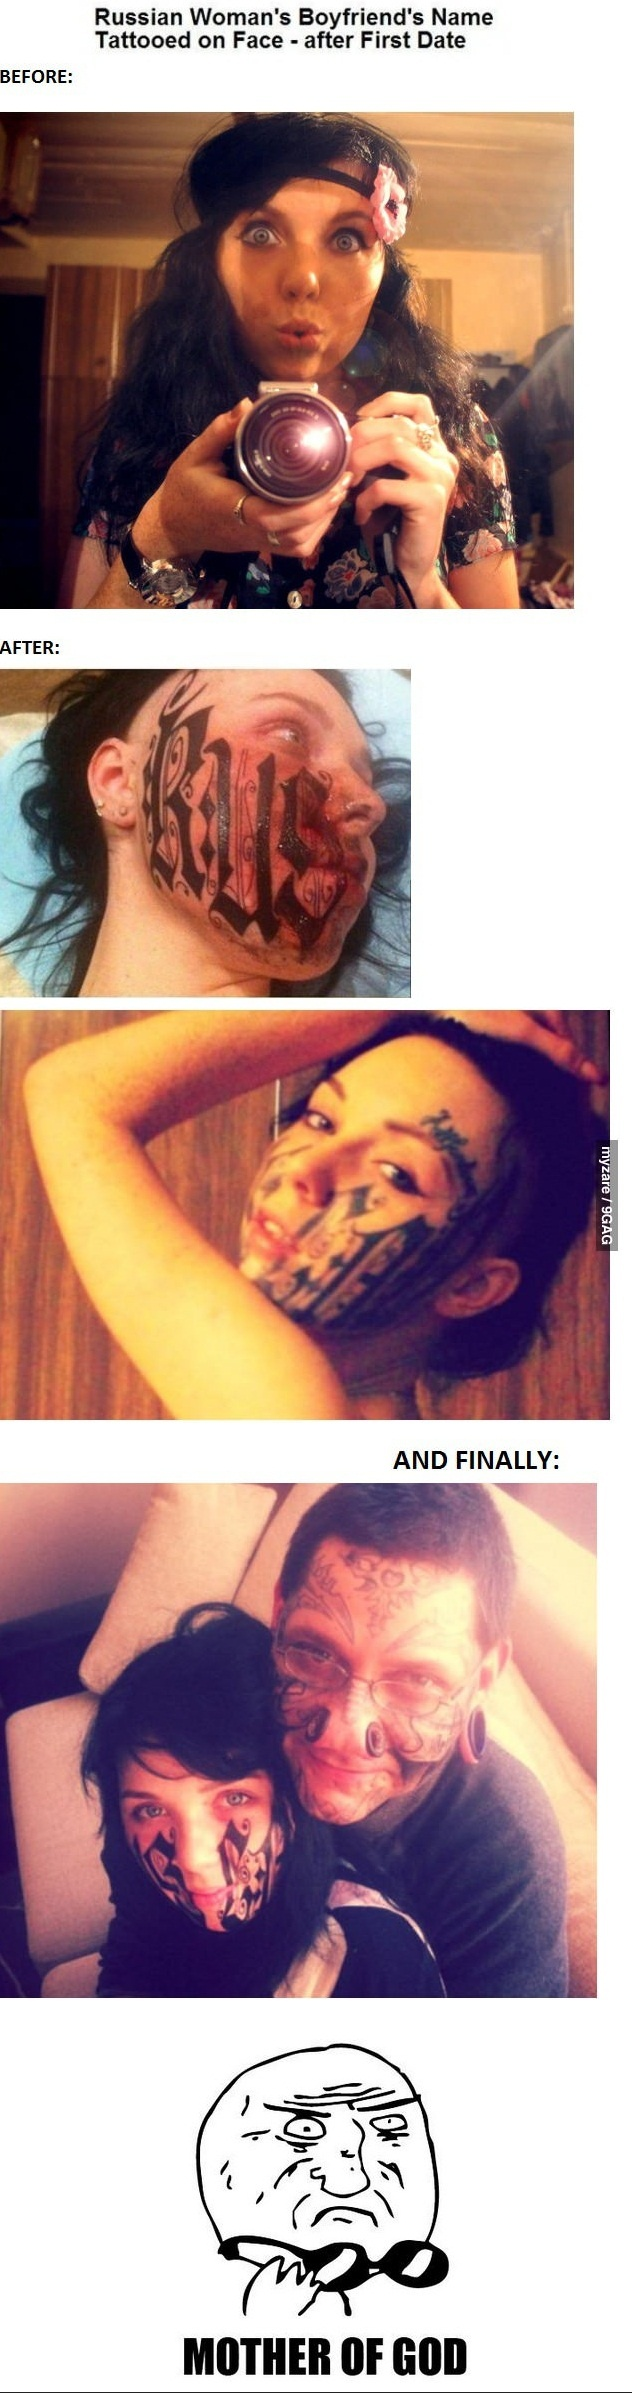 Boyfriend's Name Tattooed on Face... This is actually sad!! Why would she do this???